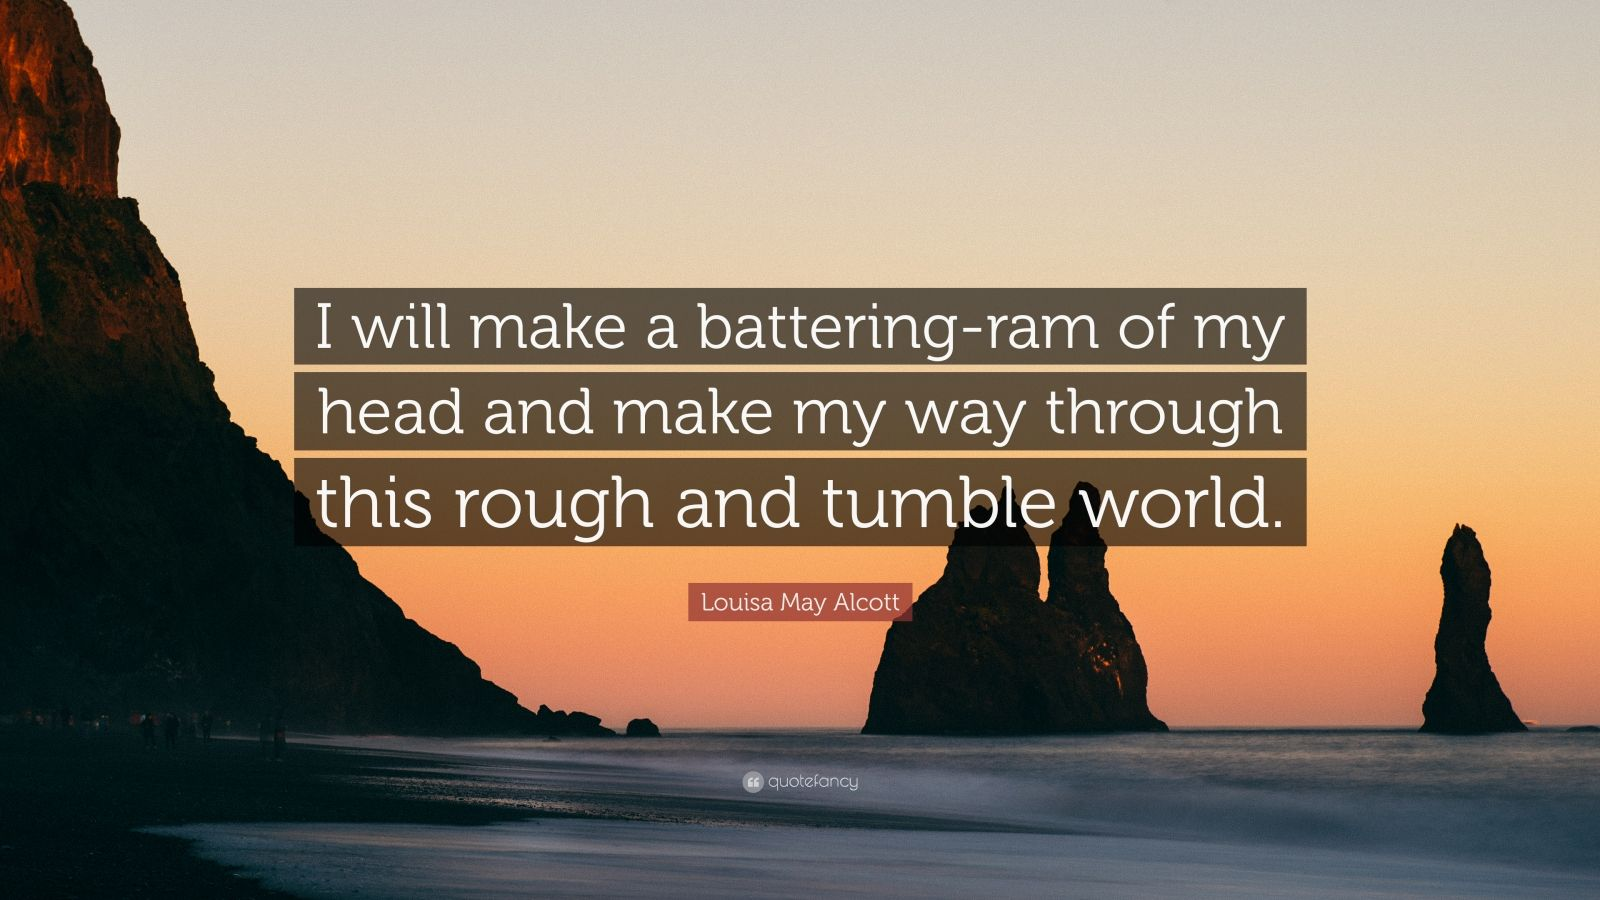 """Louisa May Alcott Quote: """"I will make a battering-ram of my head and make my way through this rough and tumble world."""""""